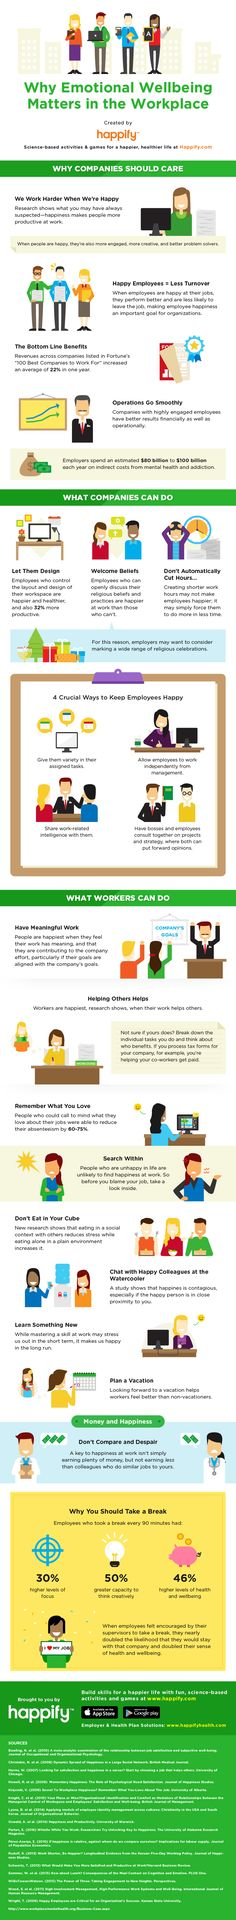 Happier employees ar